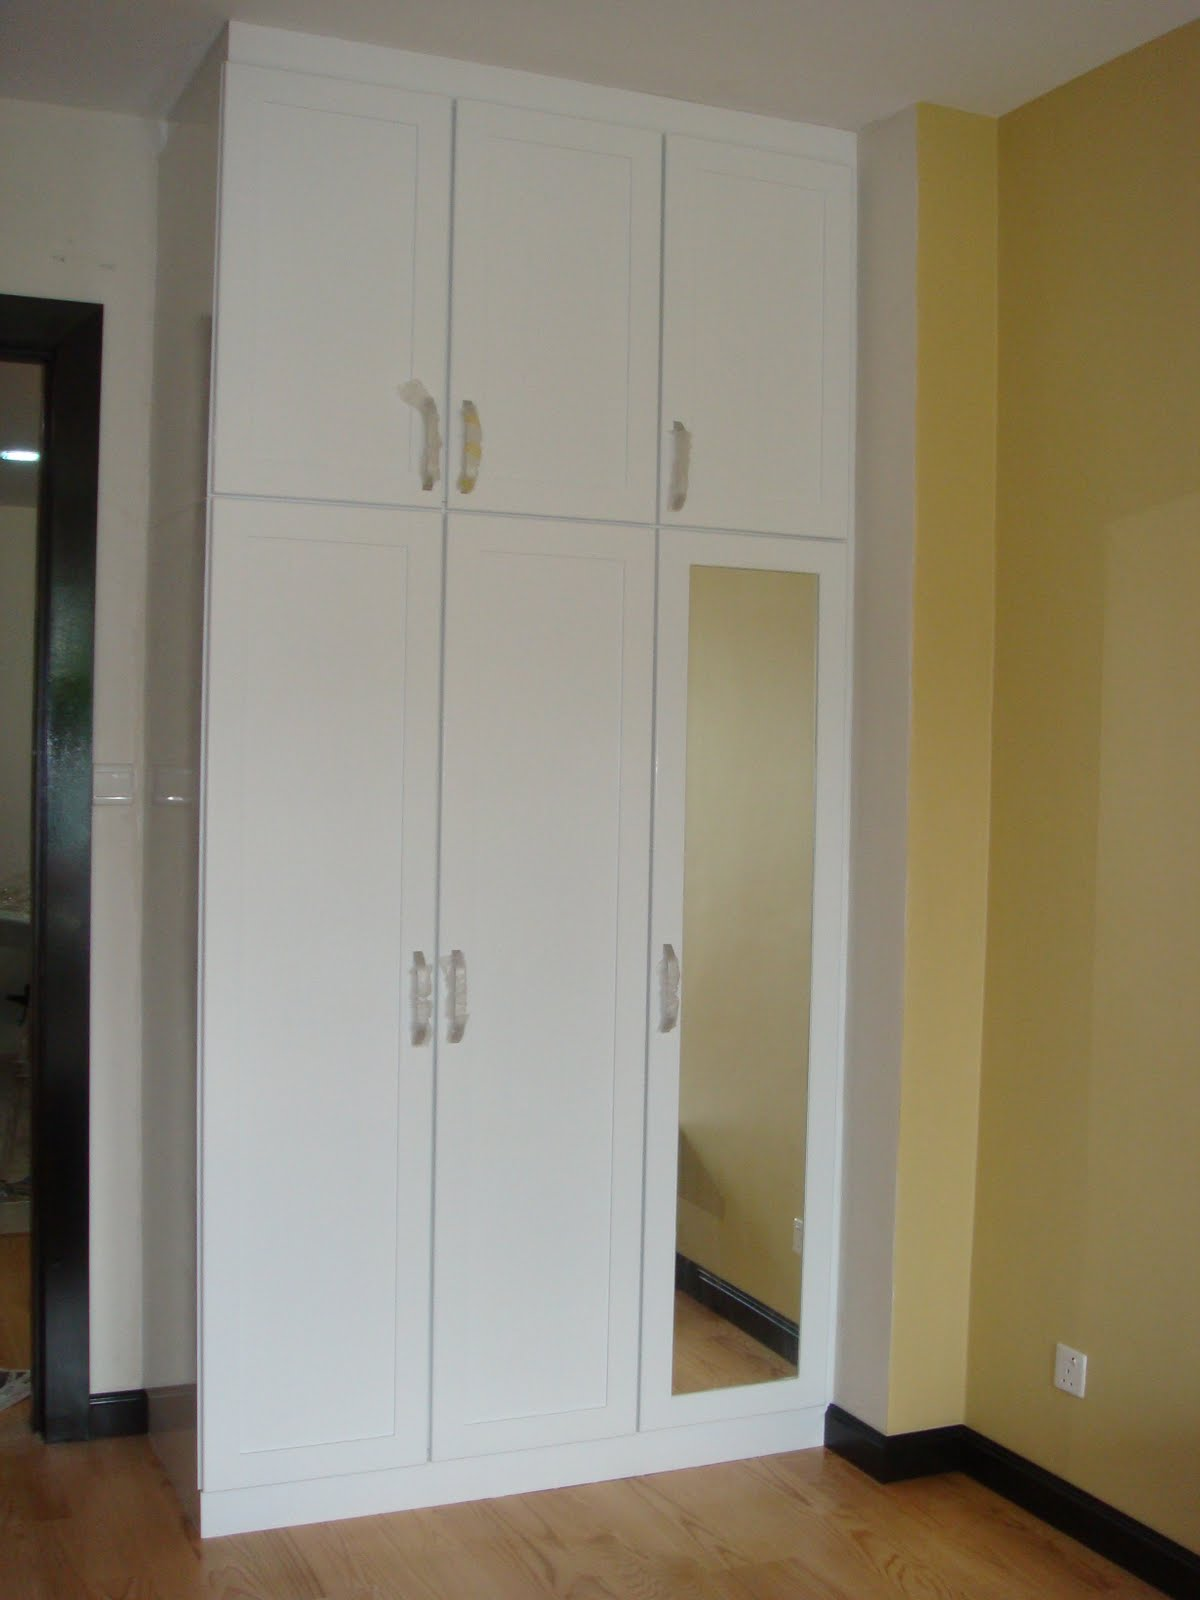 Alony design kitchen showroom wardrobe for Kitchen wardrobe design